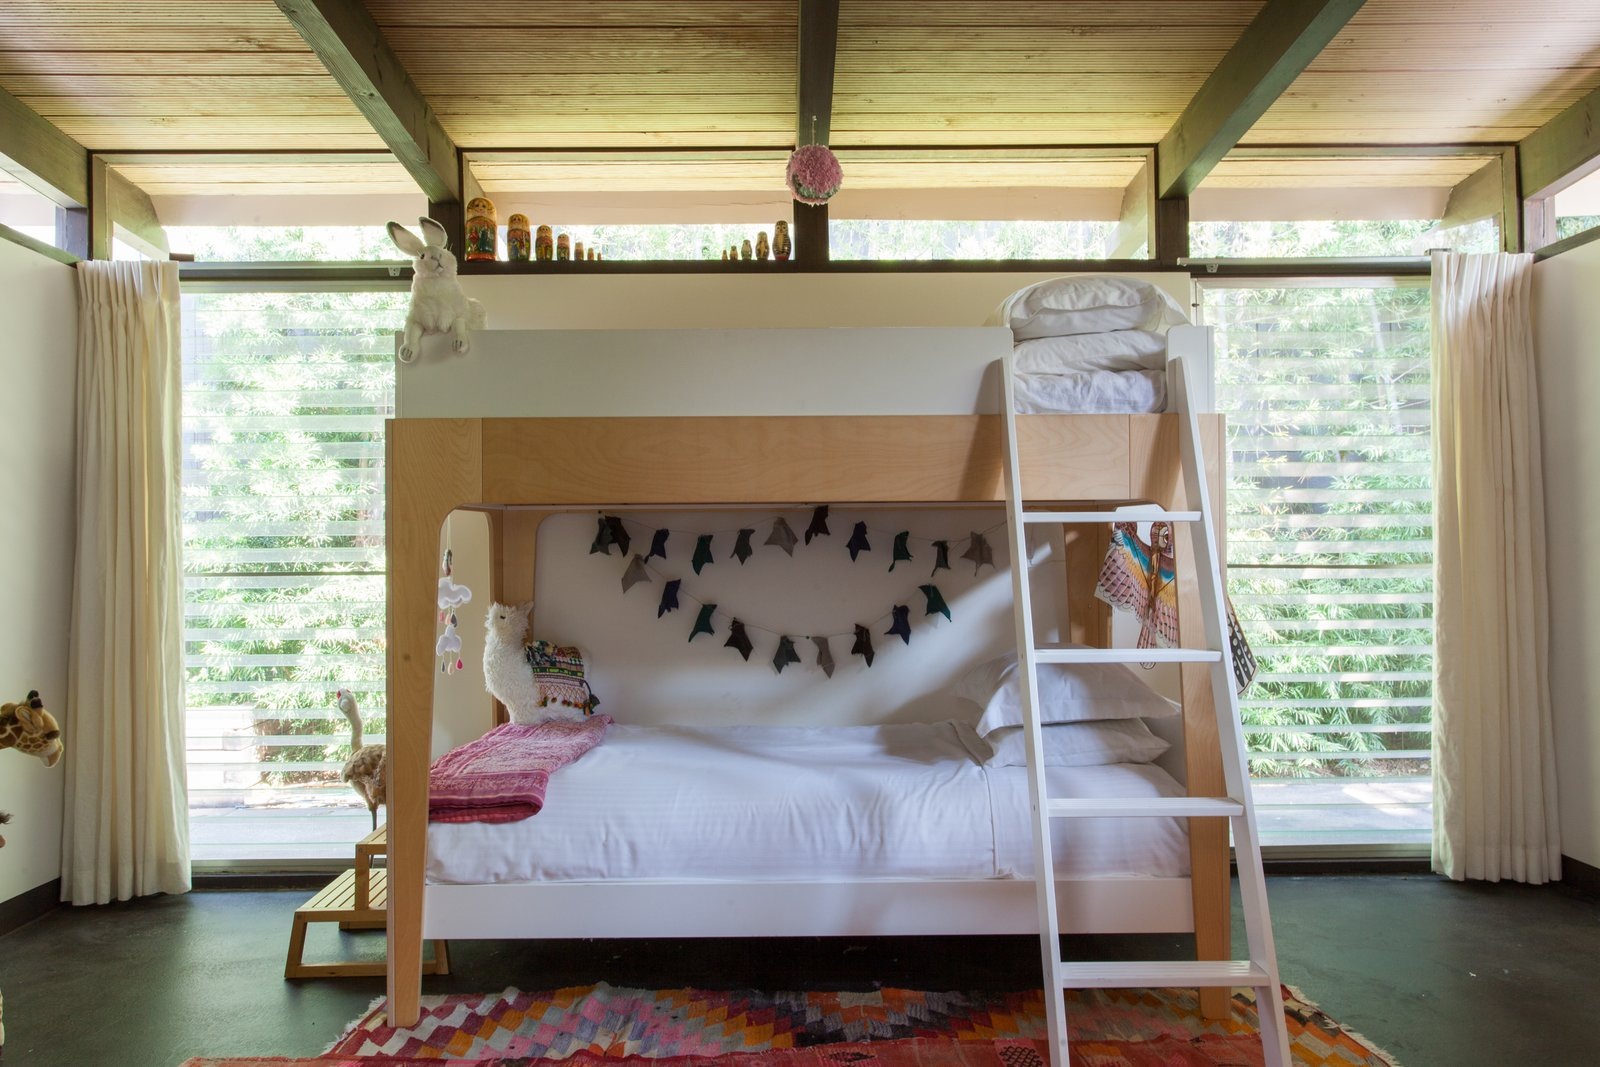 Kids Room, Bunks, Bedroom Room Type, Rug Floor, Pre-Teen Age, and Neutral Gender  Photos from Hole Up in This Quintessential Midcentury Modern Rental in Hollywood